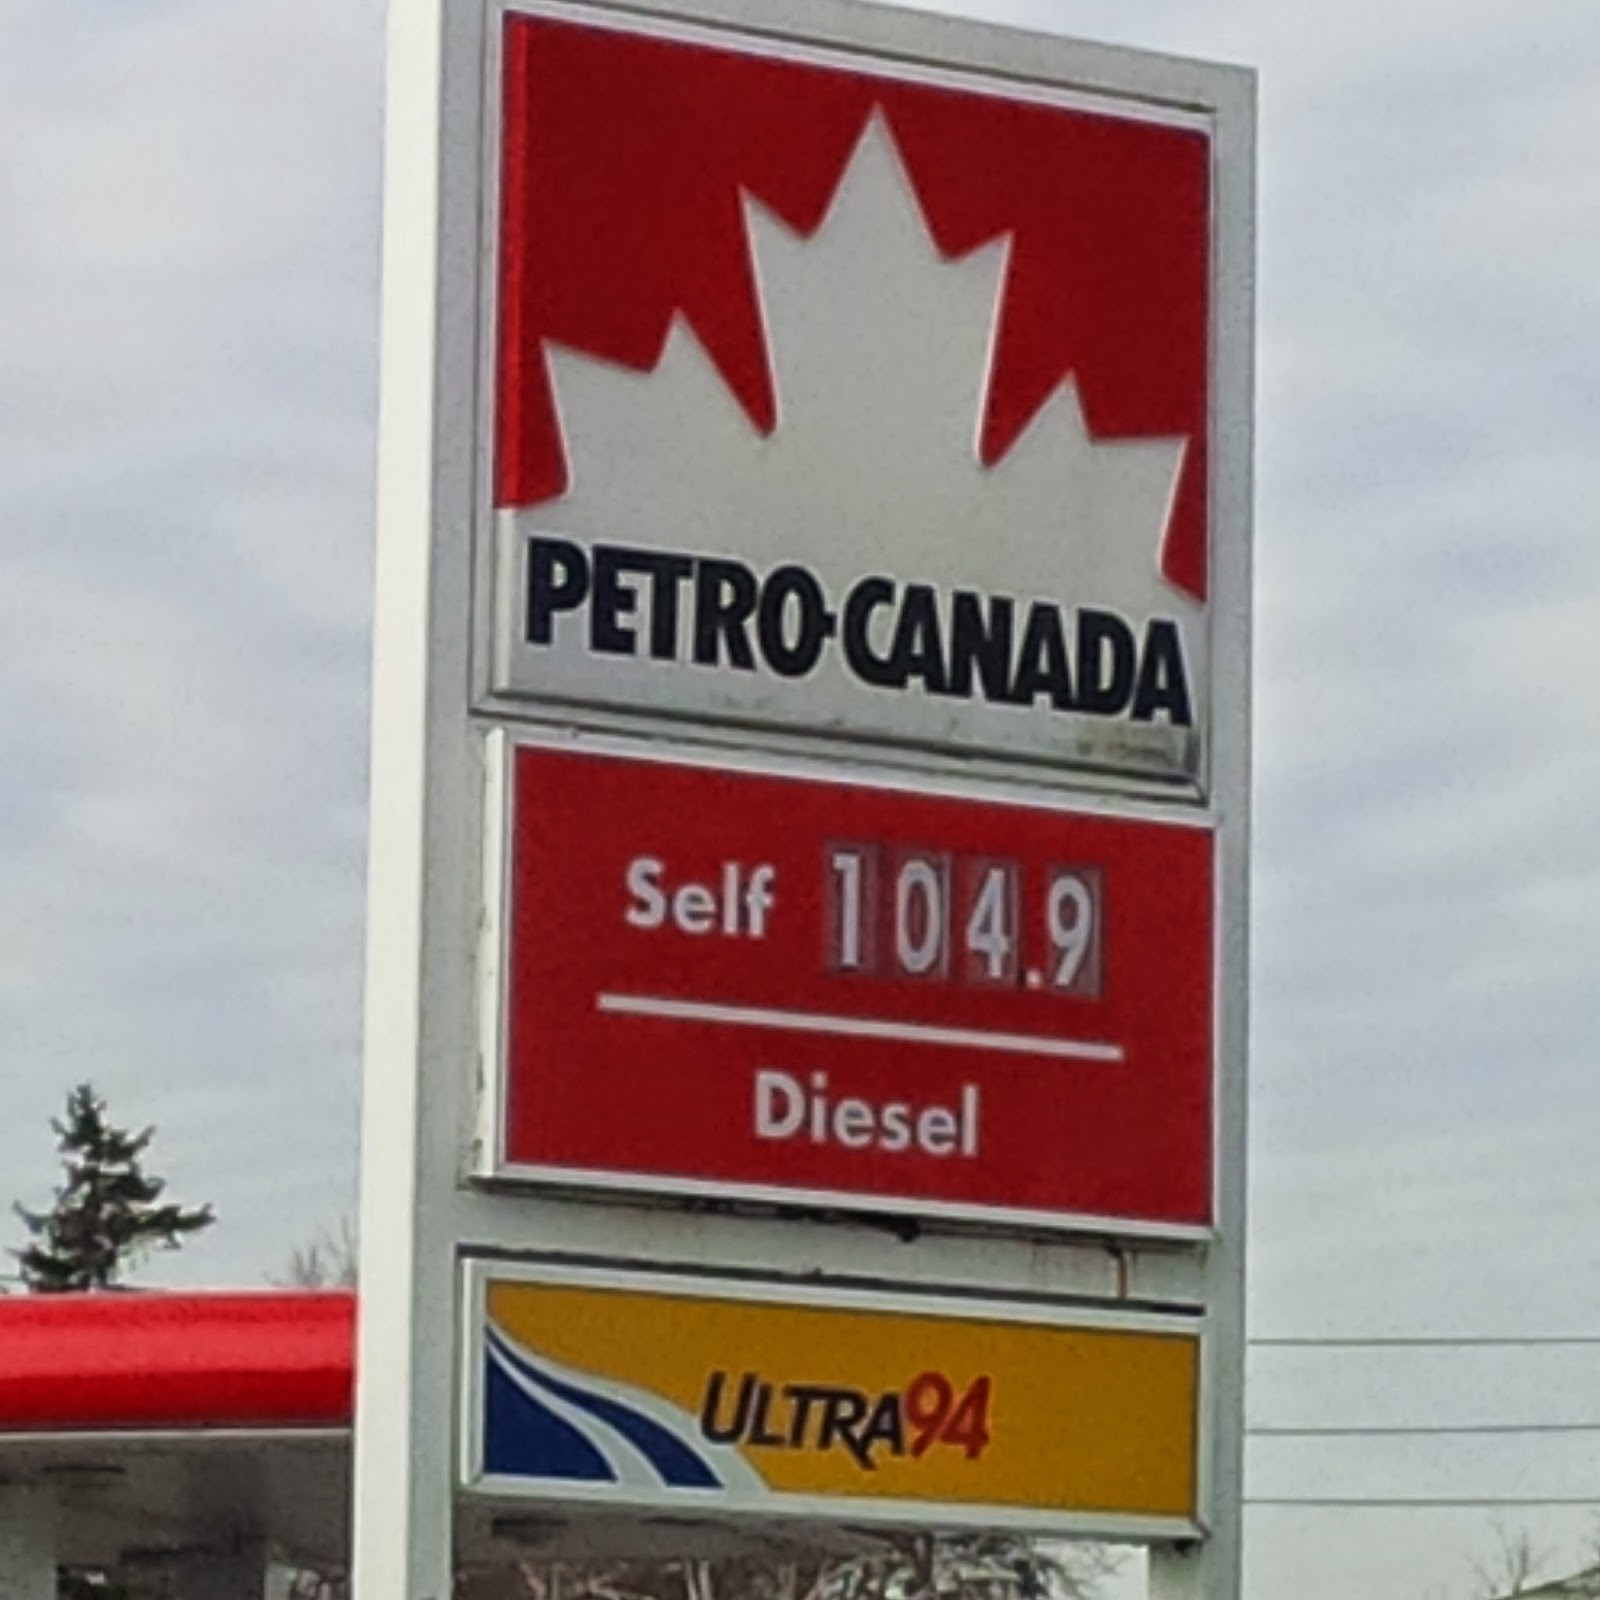 gasoline prices Find a great collection of costco gasoline at costco enjoy low warehouse prices on name-brand costco gasoline products.